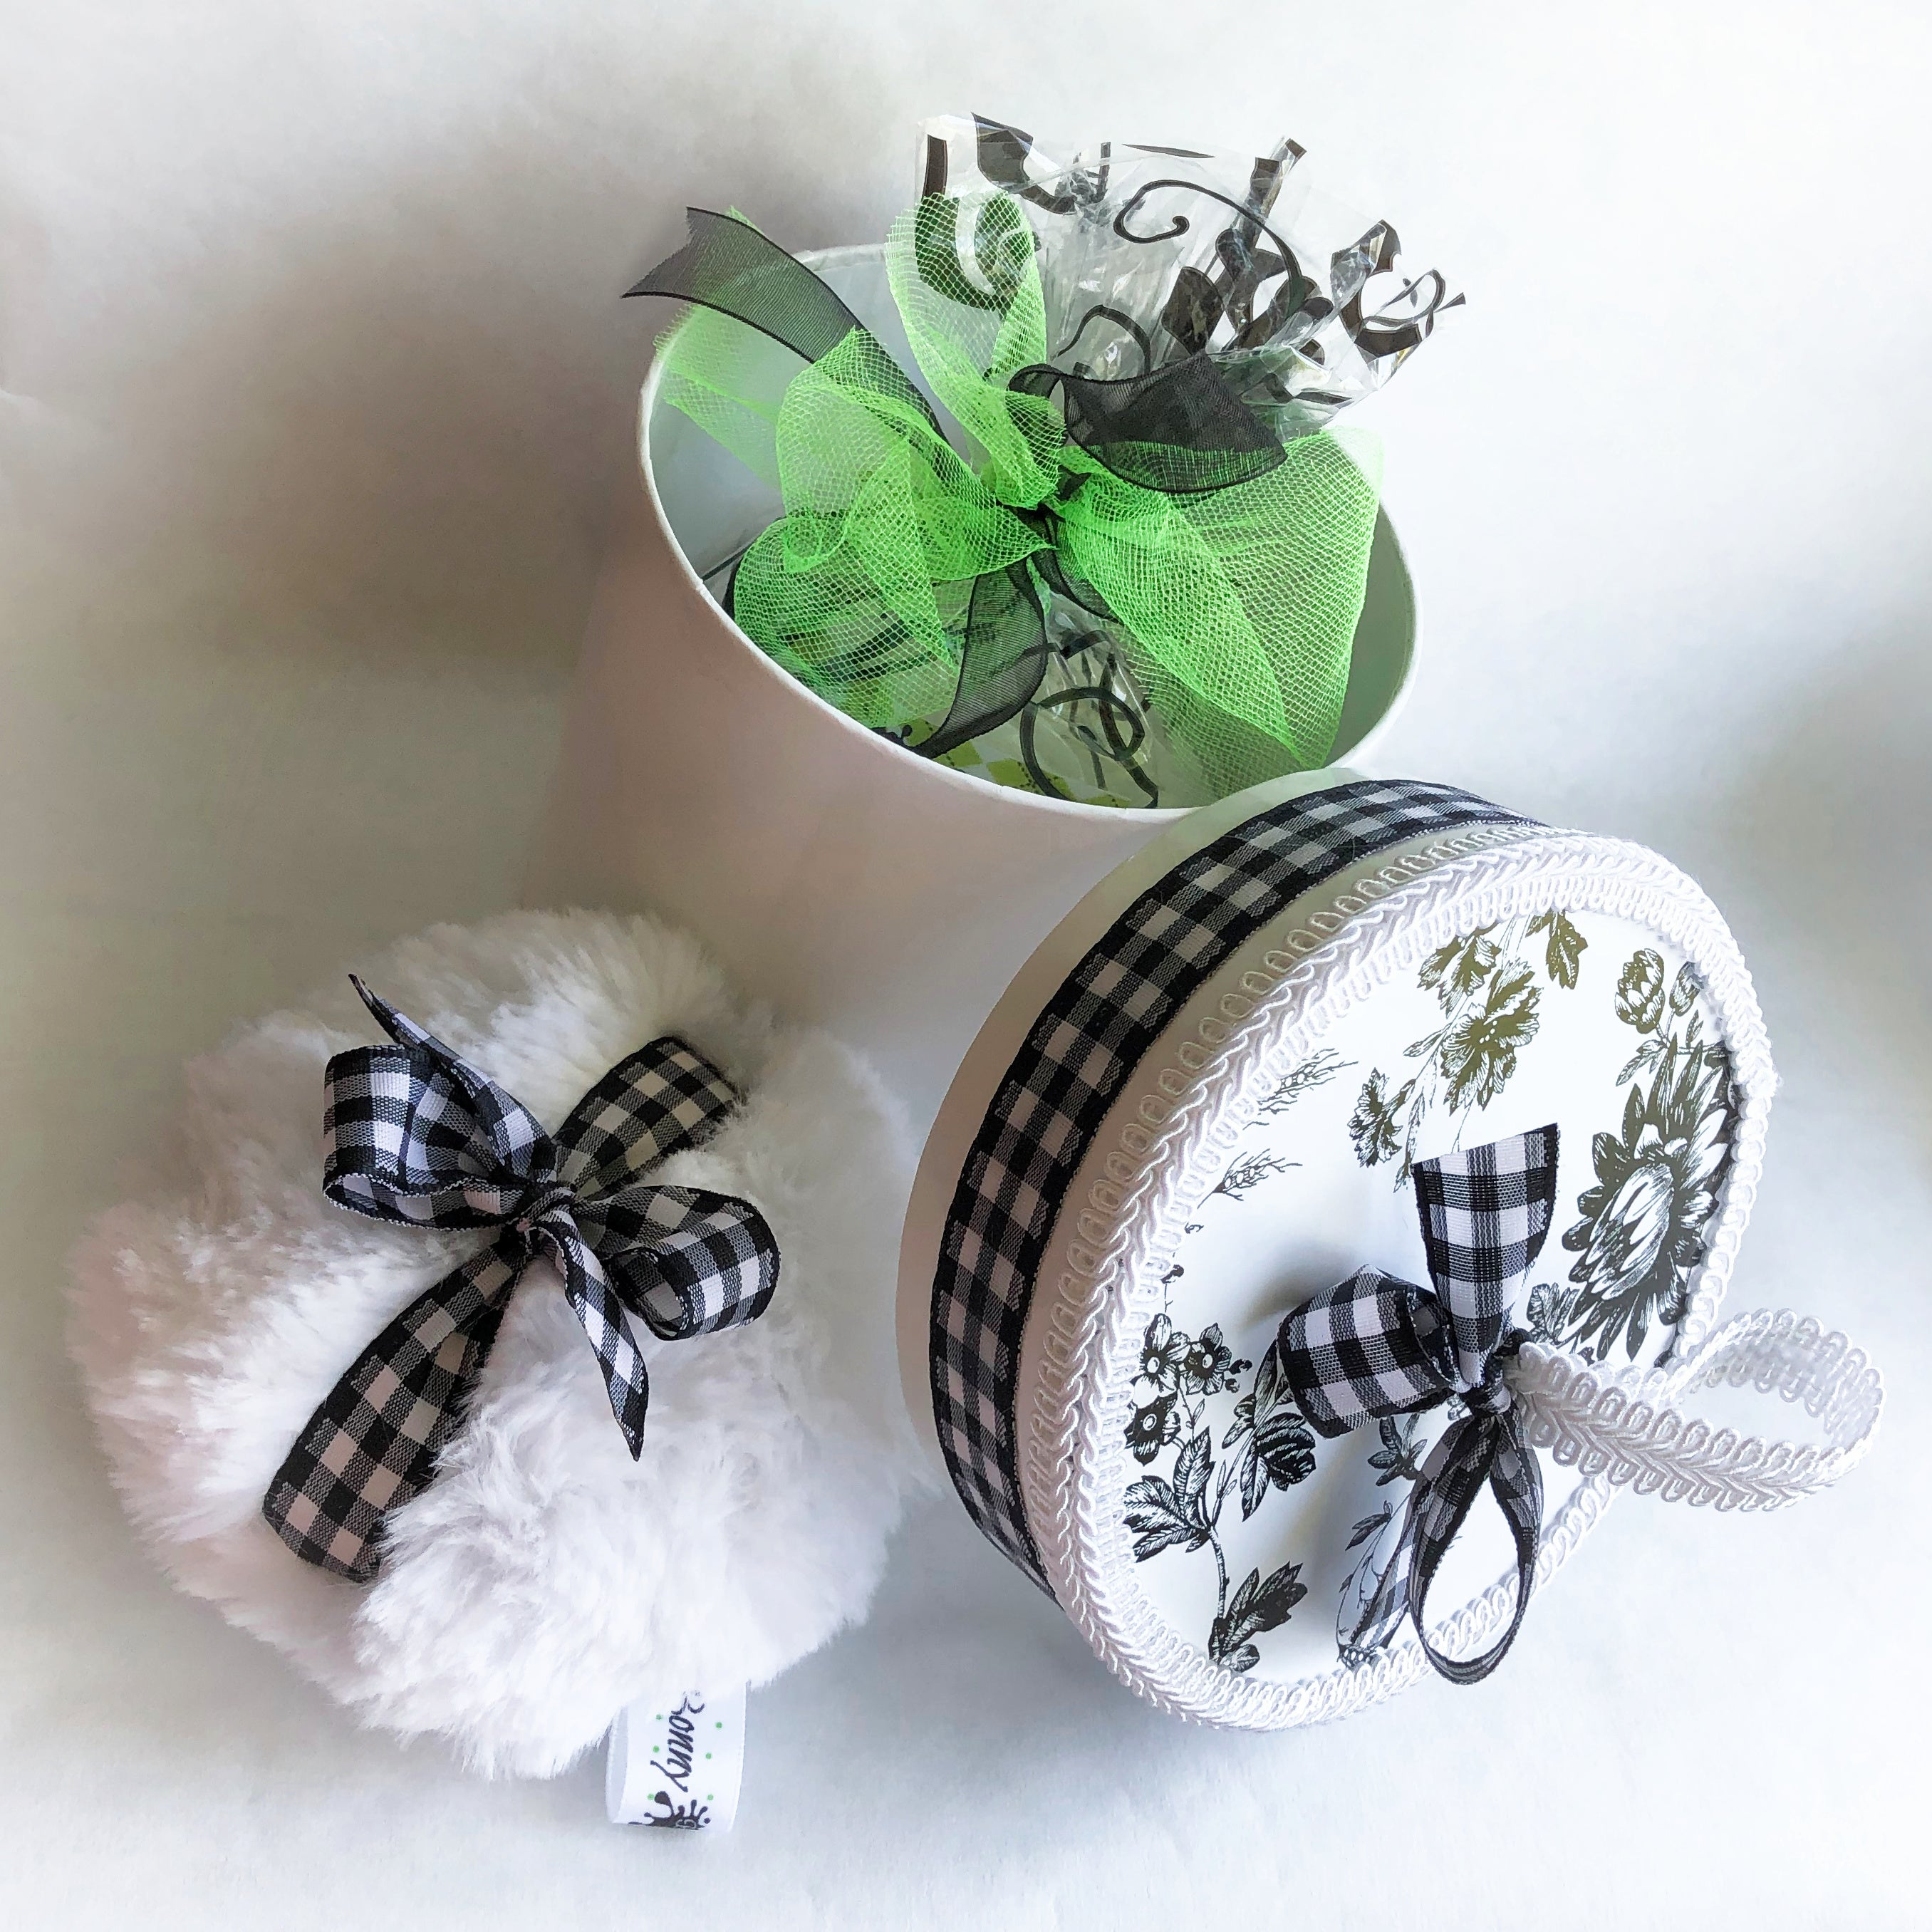 Body Powder Puff Set - black and white gingham - talc and cornstarch free - dusting powder - buffalo check plaid